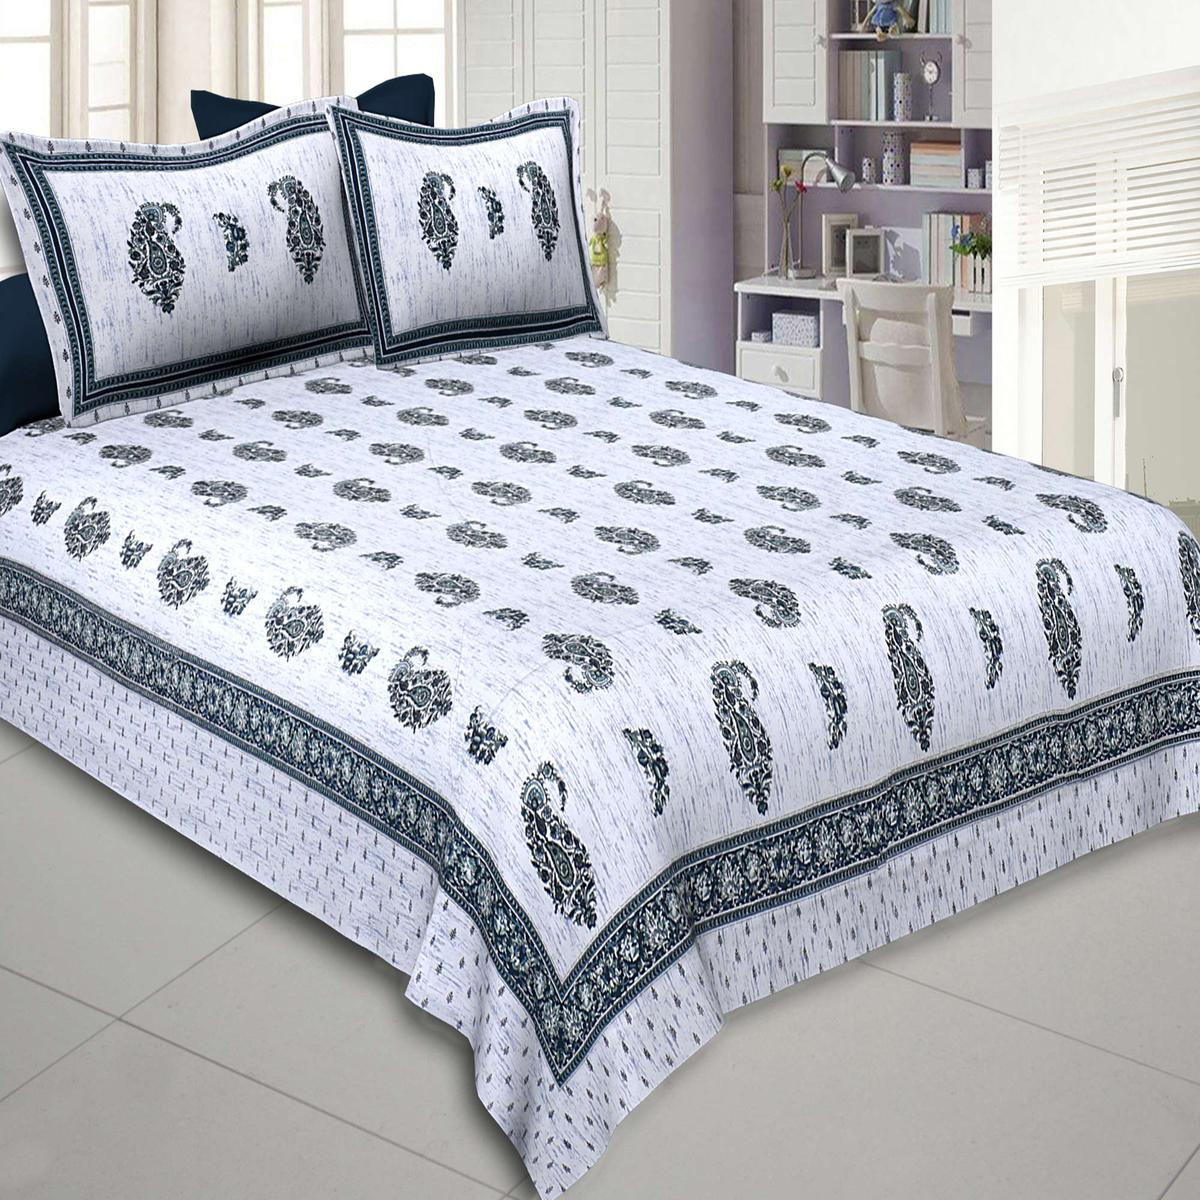 Jaipur Fabric Marble Italica Green White Pure Cotton Double Bedsheet With Two Pillow Covers